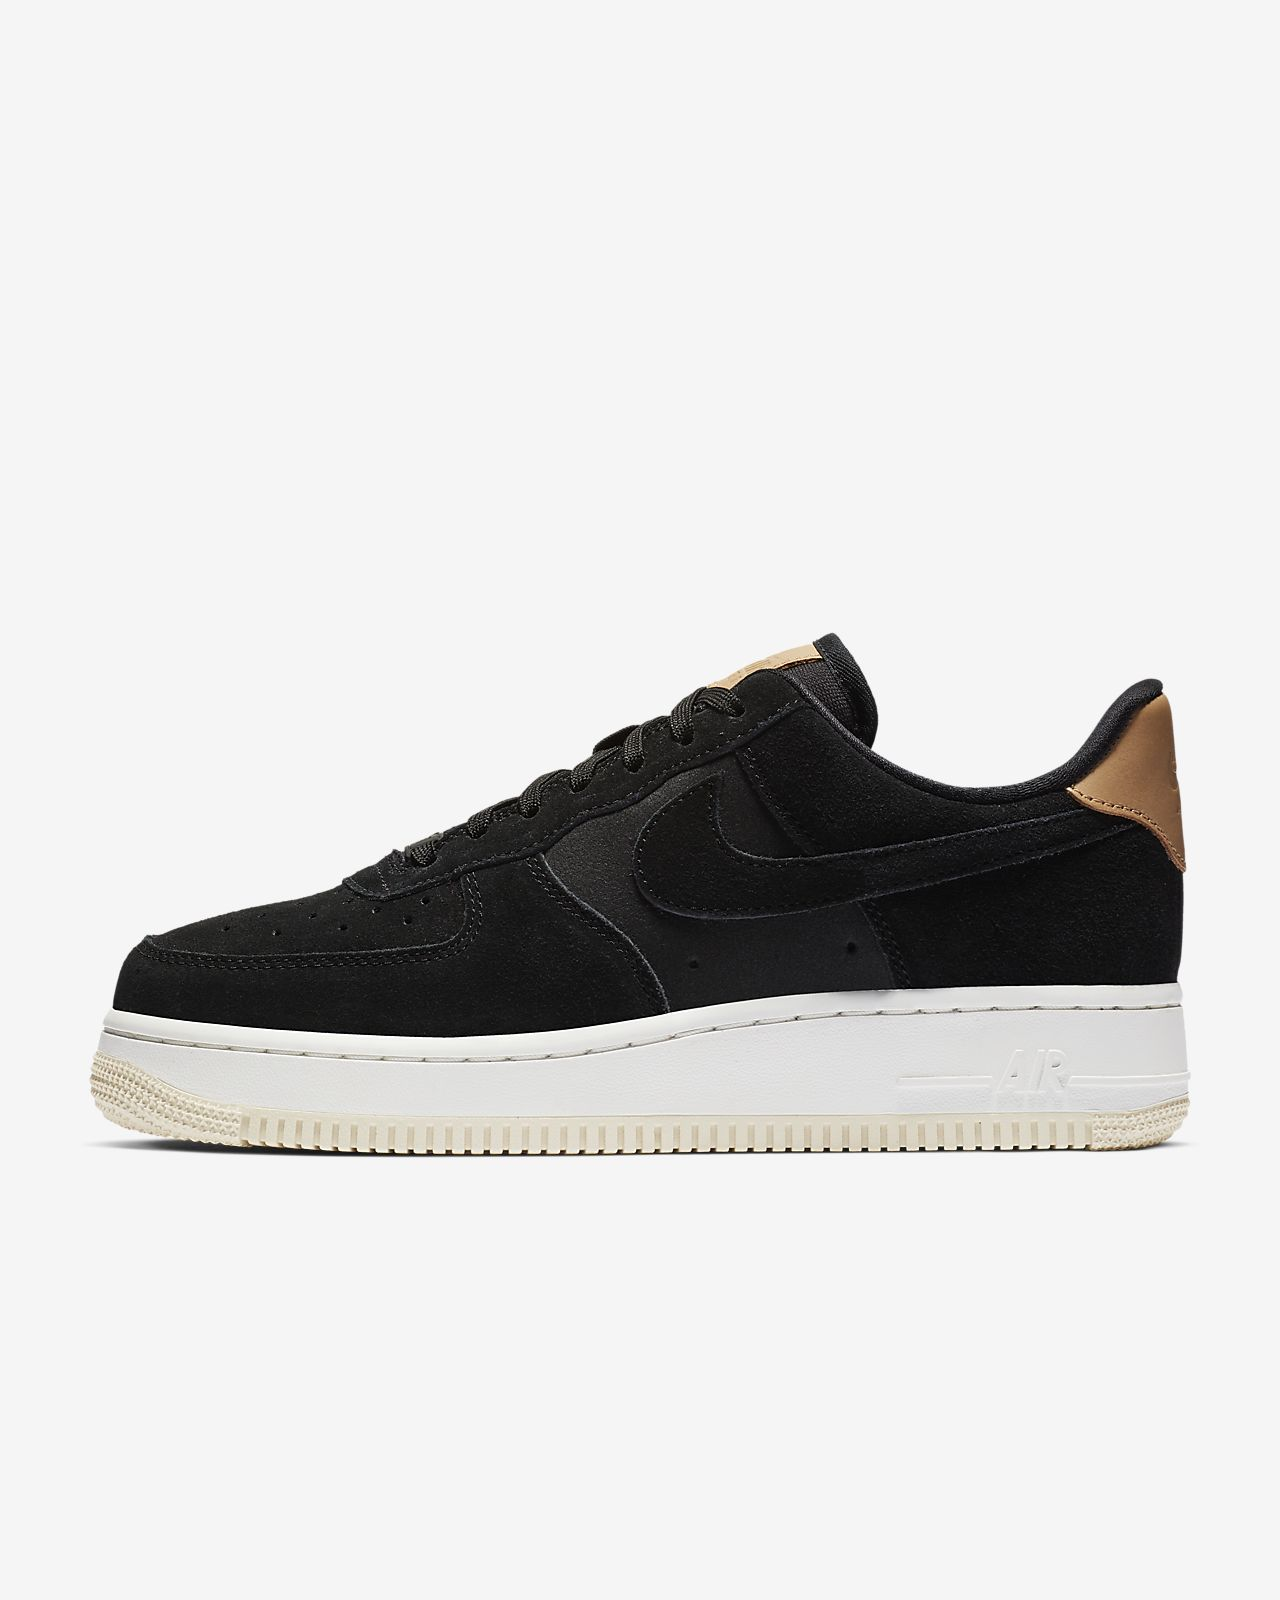 detailed look 80022 f2f34 ... Nike Air Force 1 07 Low Premium Womens Shoe